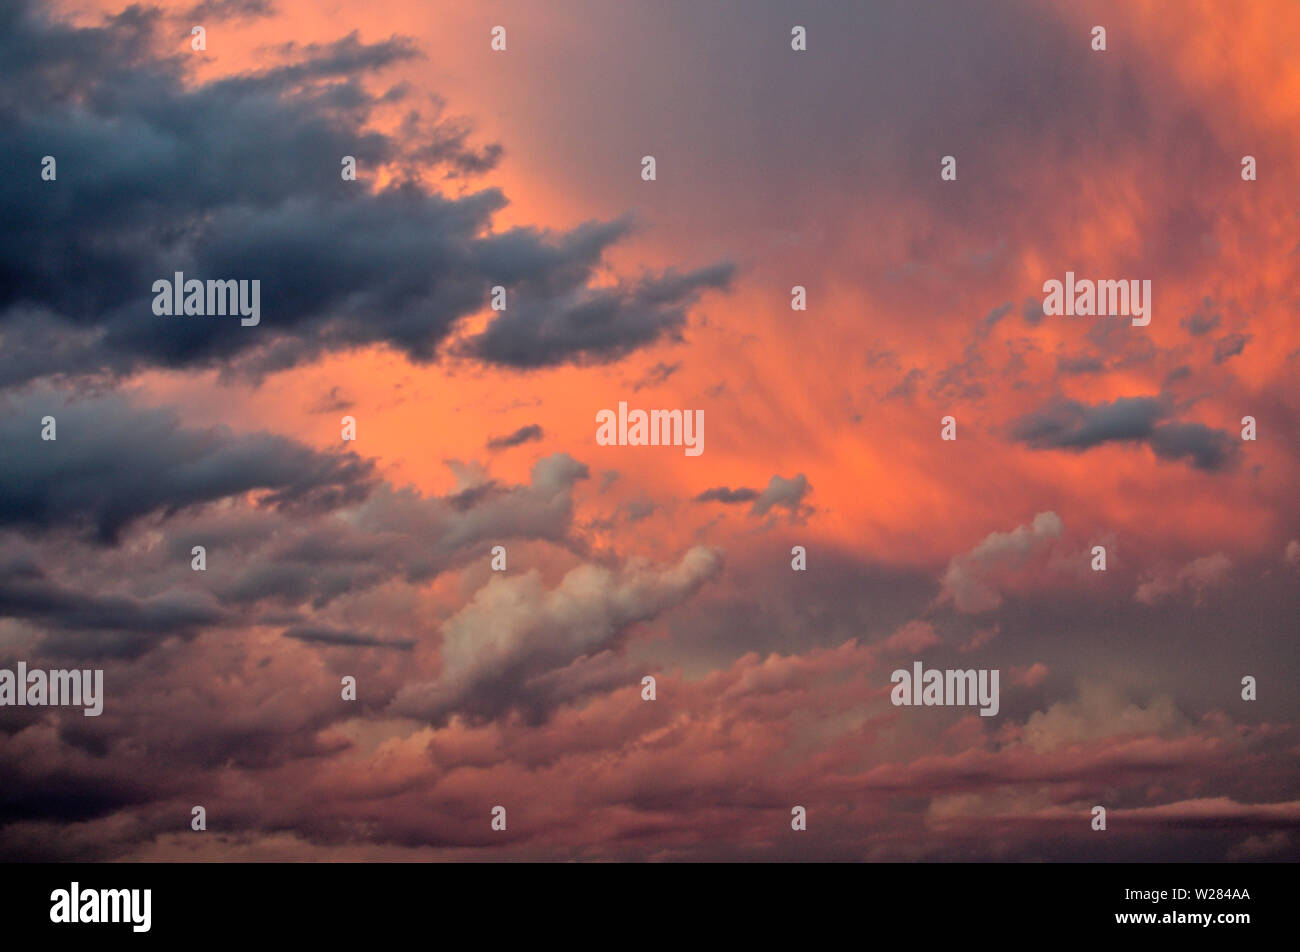 Several layers of weird multicolored clouds fill the sky at dawn during a summer storm in Mendoza, Argentina. - Stock Image